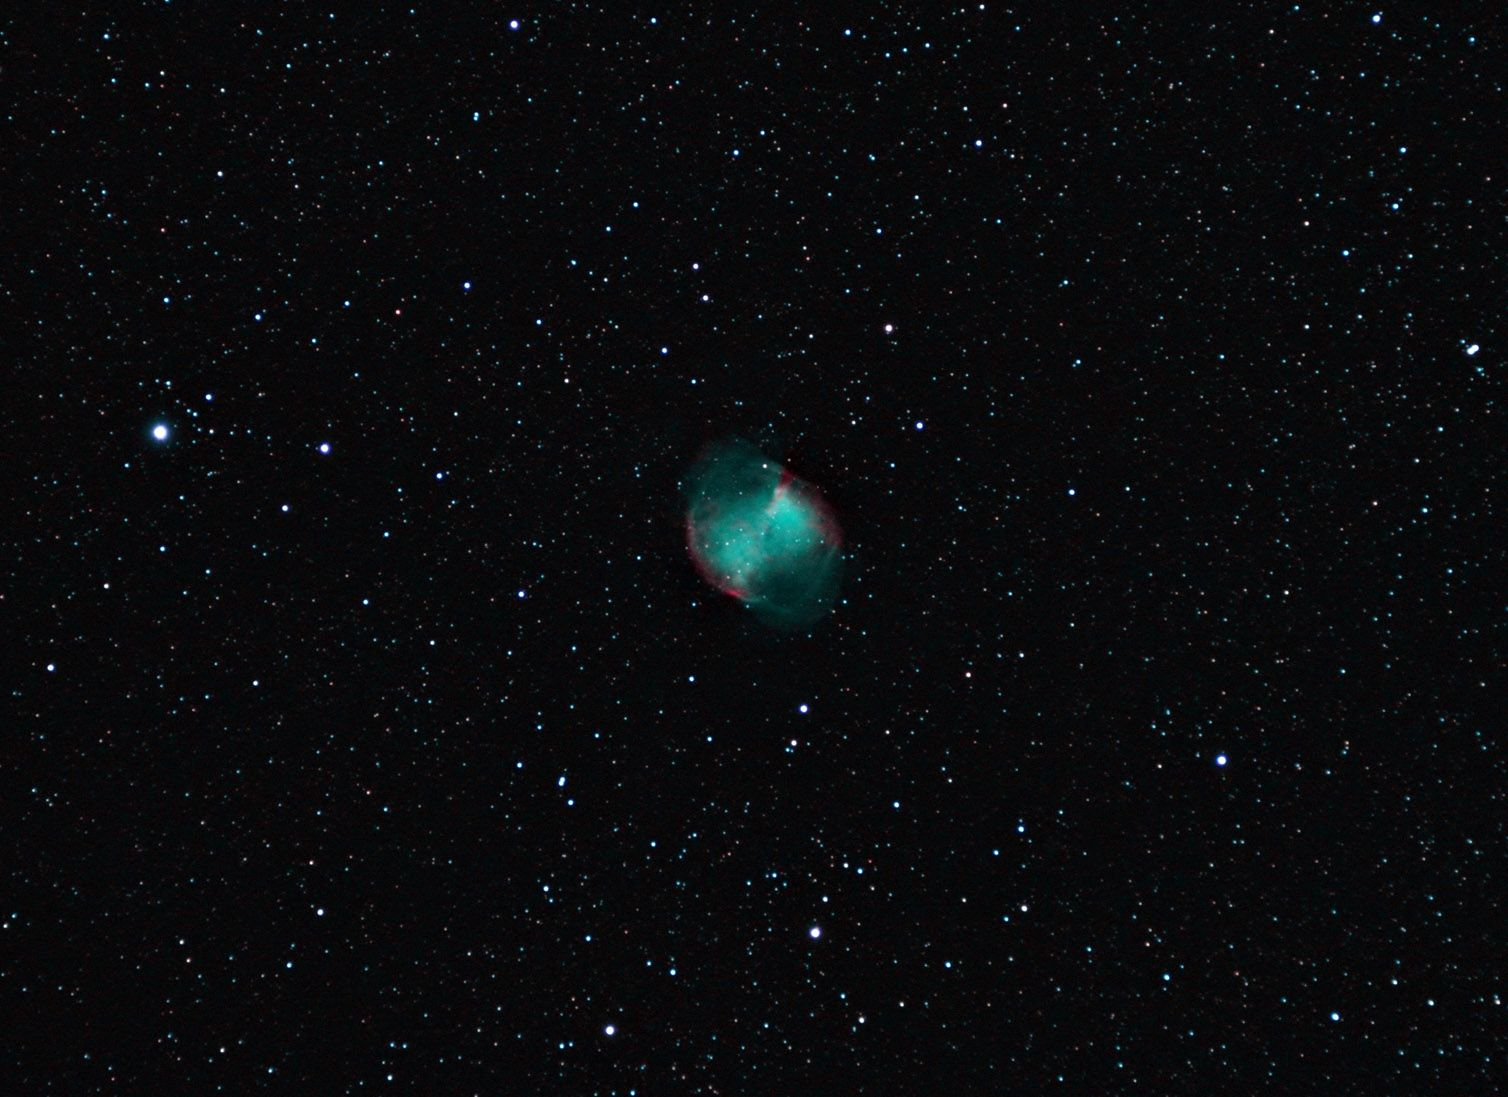 M27 - Dumbbell Nebula